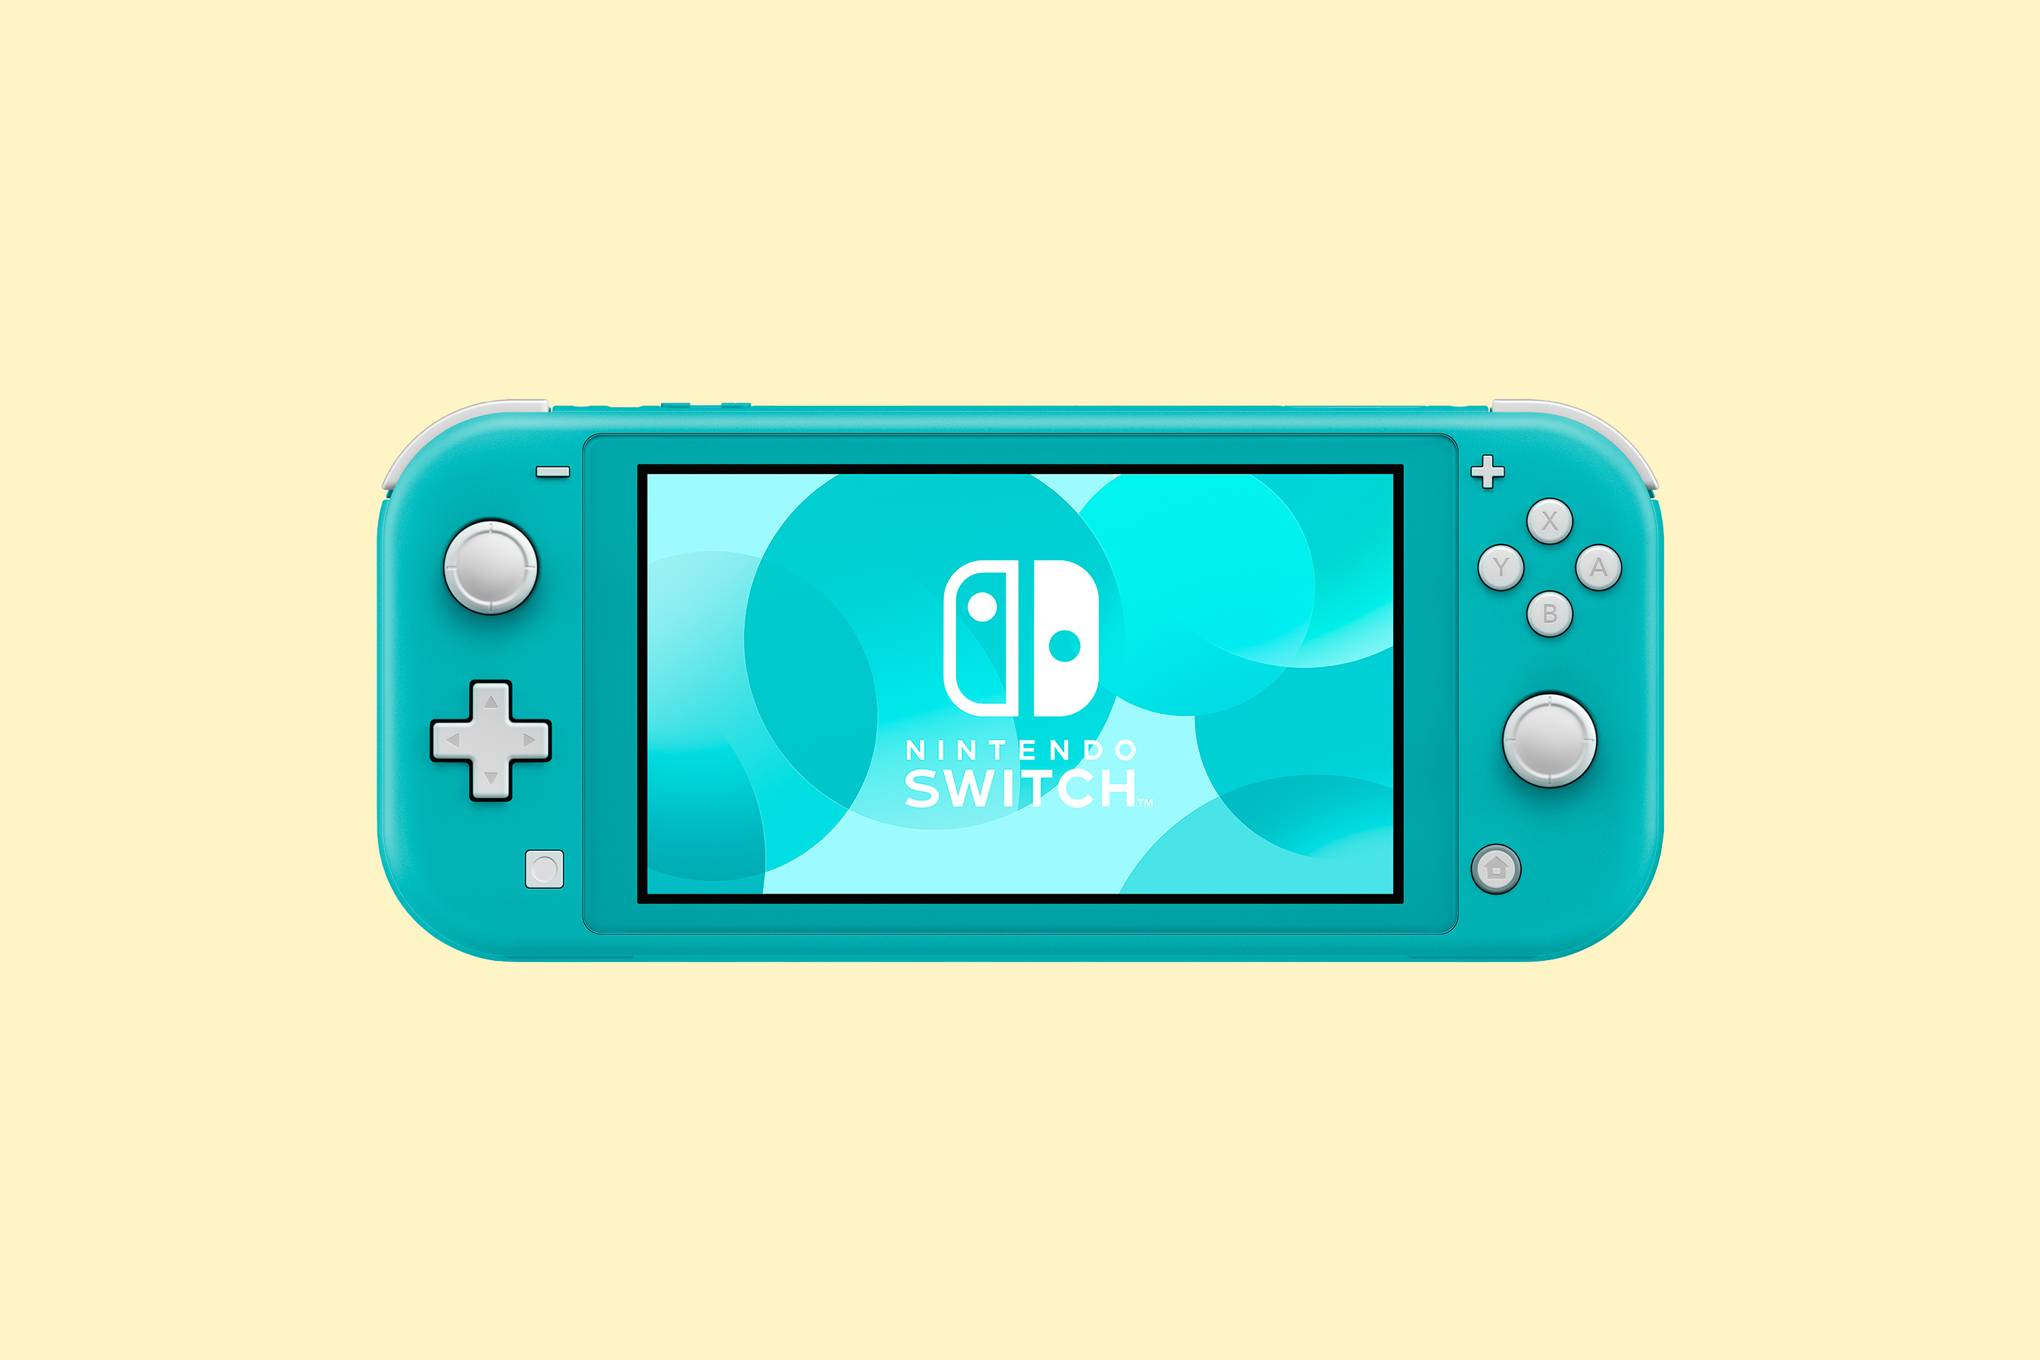 Nintendo Switch Lite review: a devolution from the full Switch